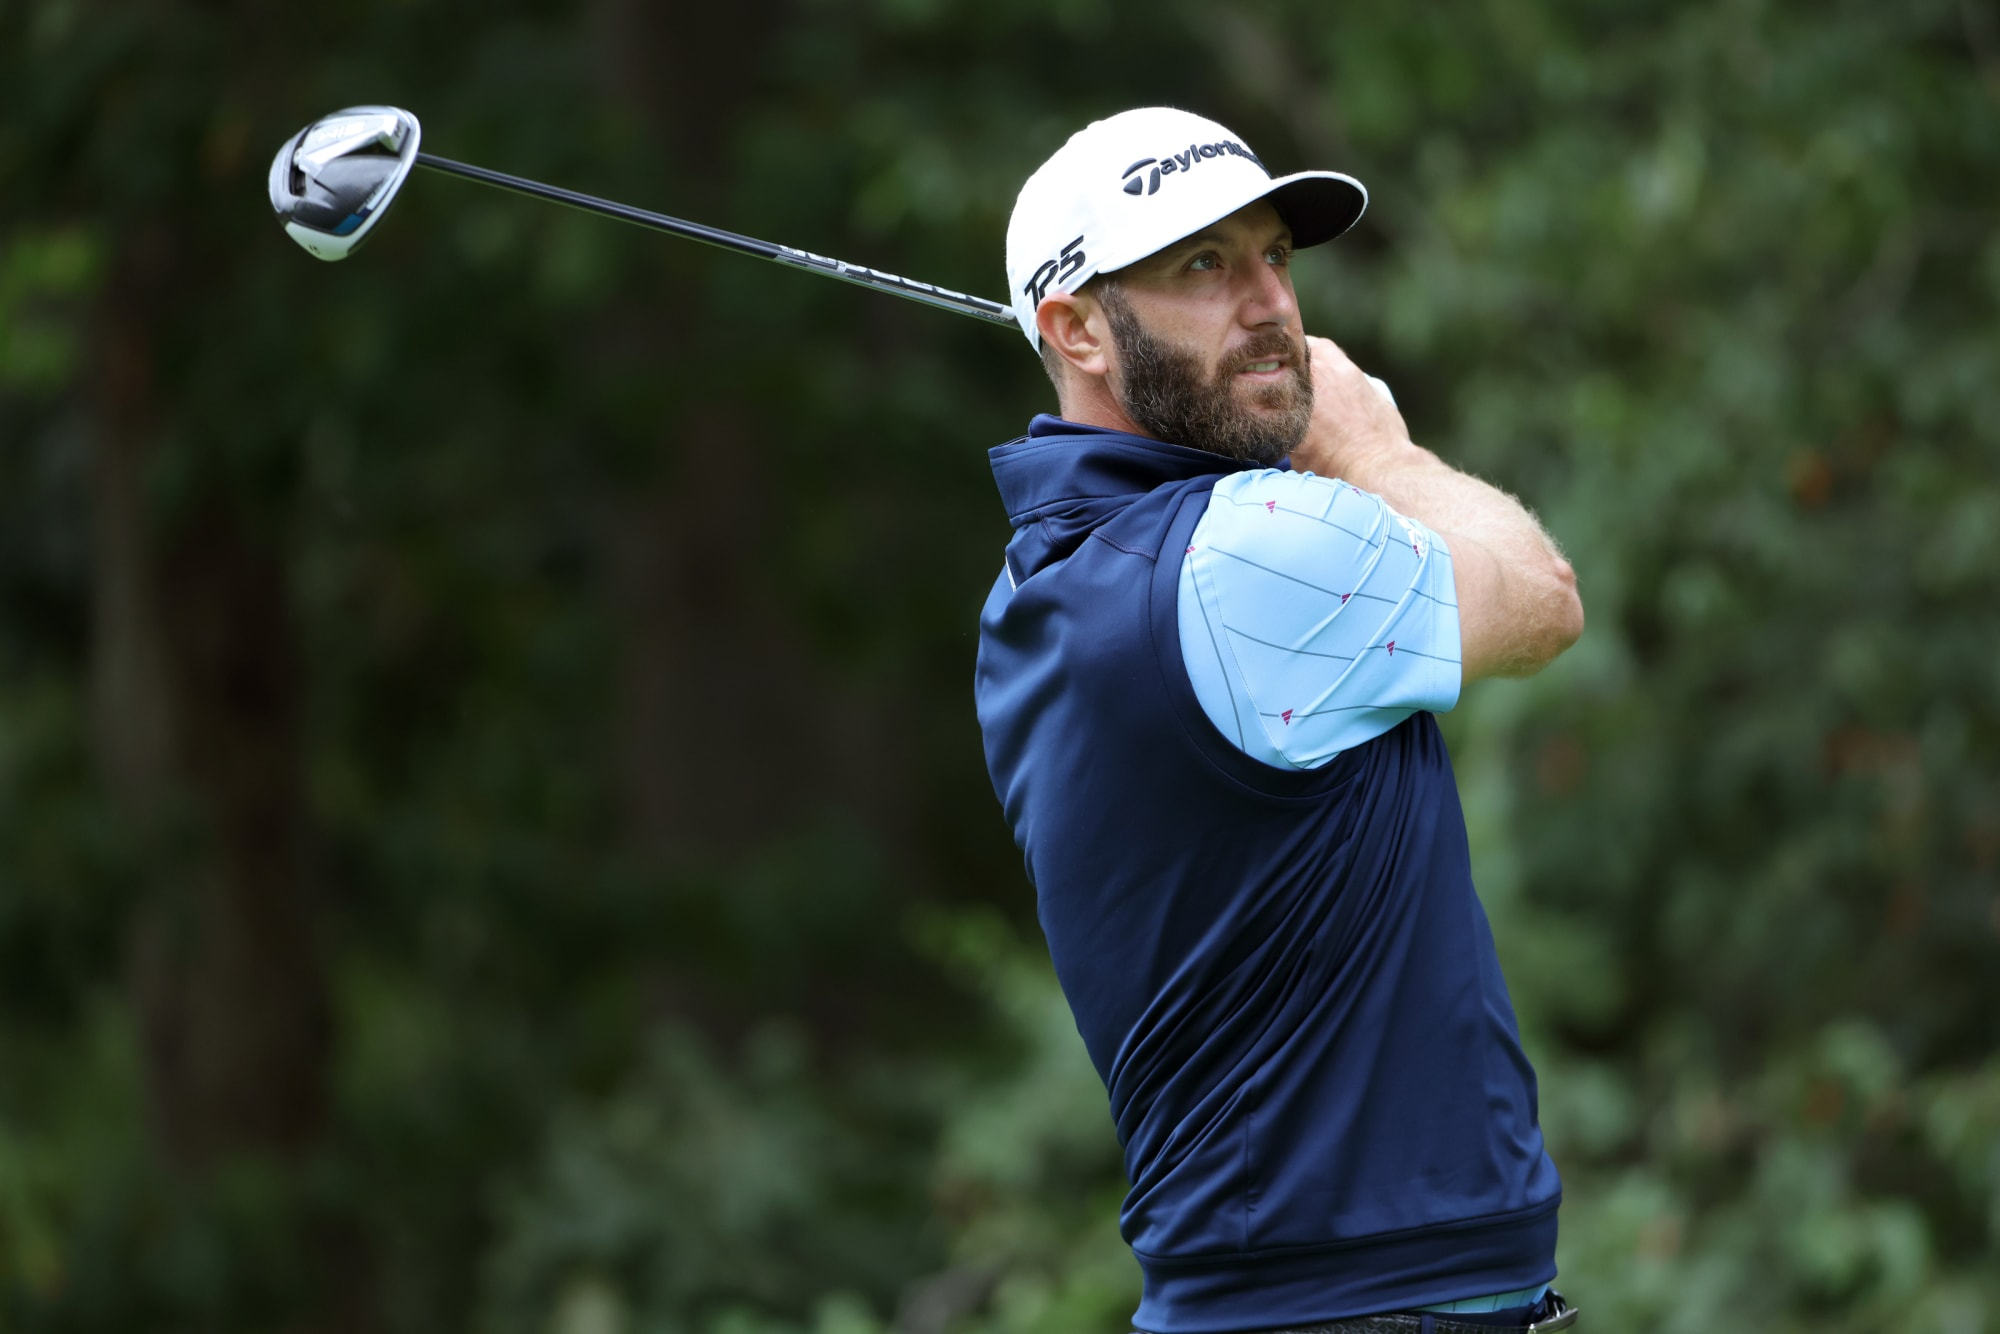 Dustin Johnson's U.S. Open prep begins off the course